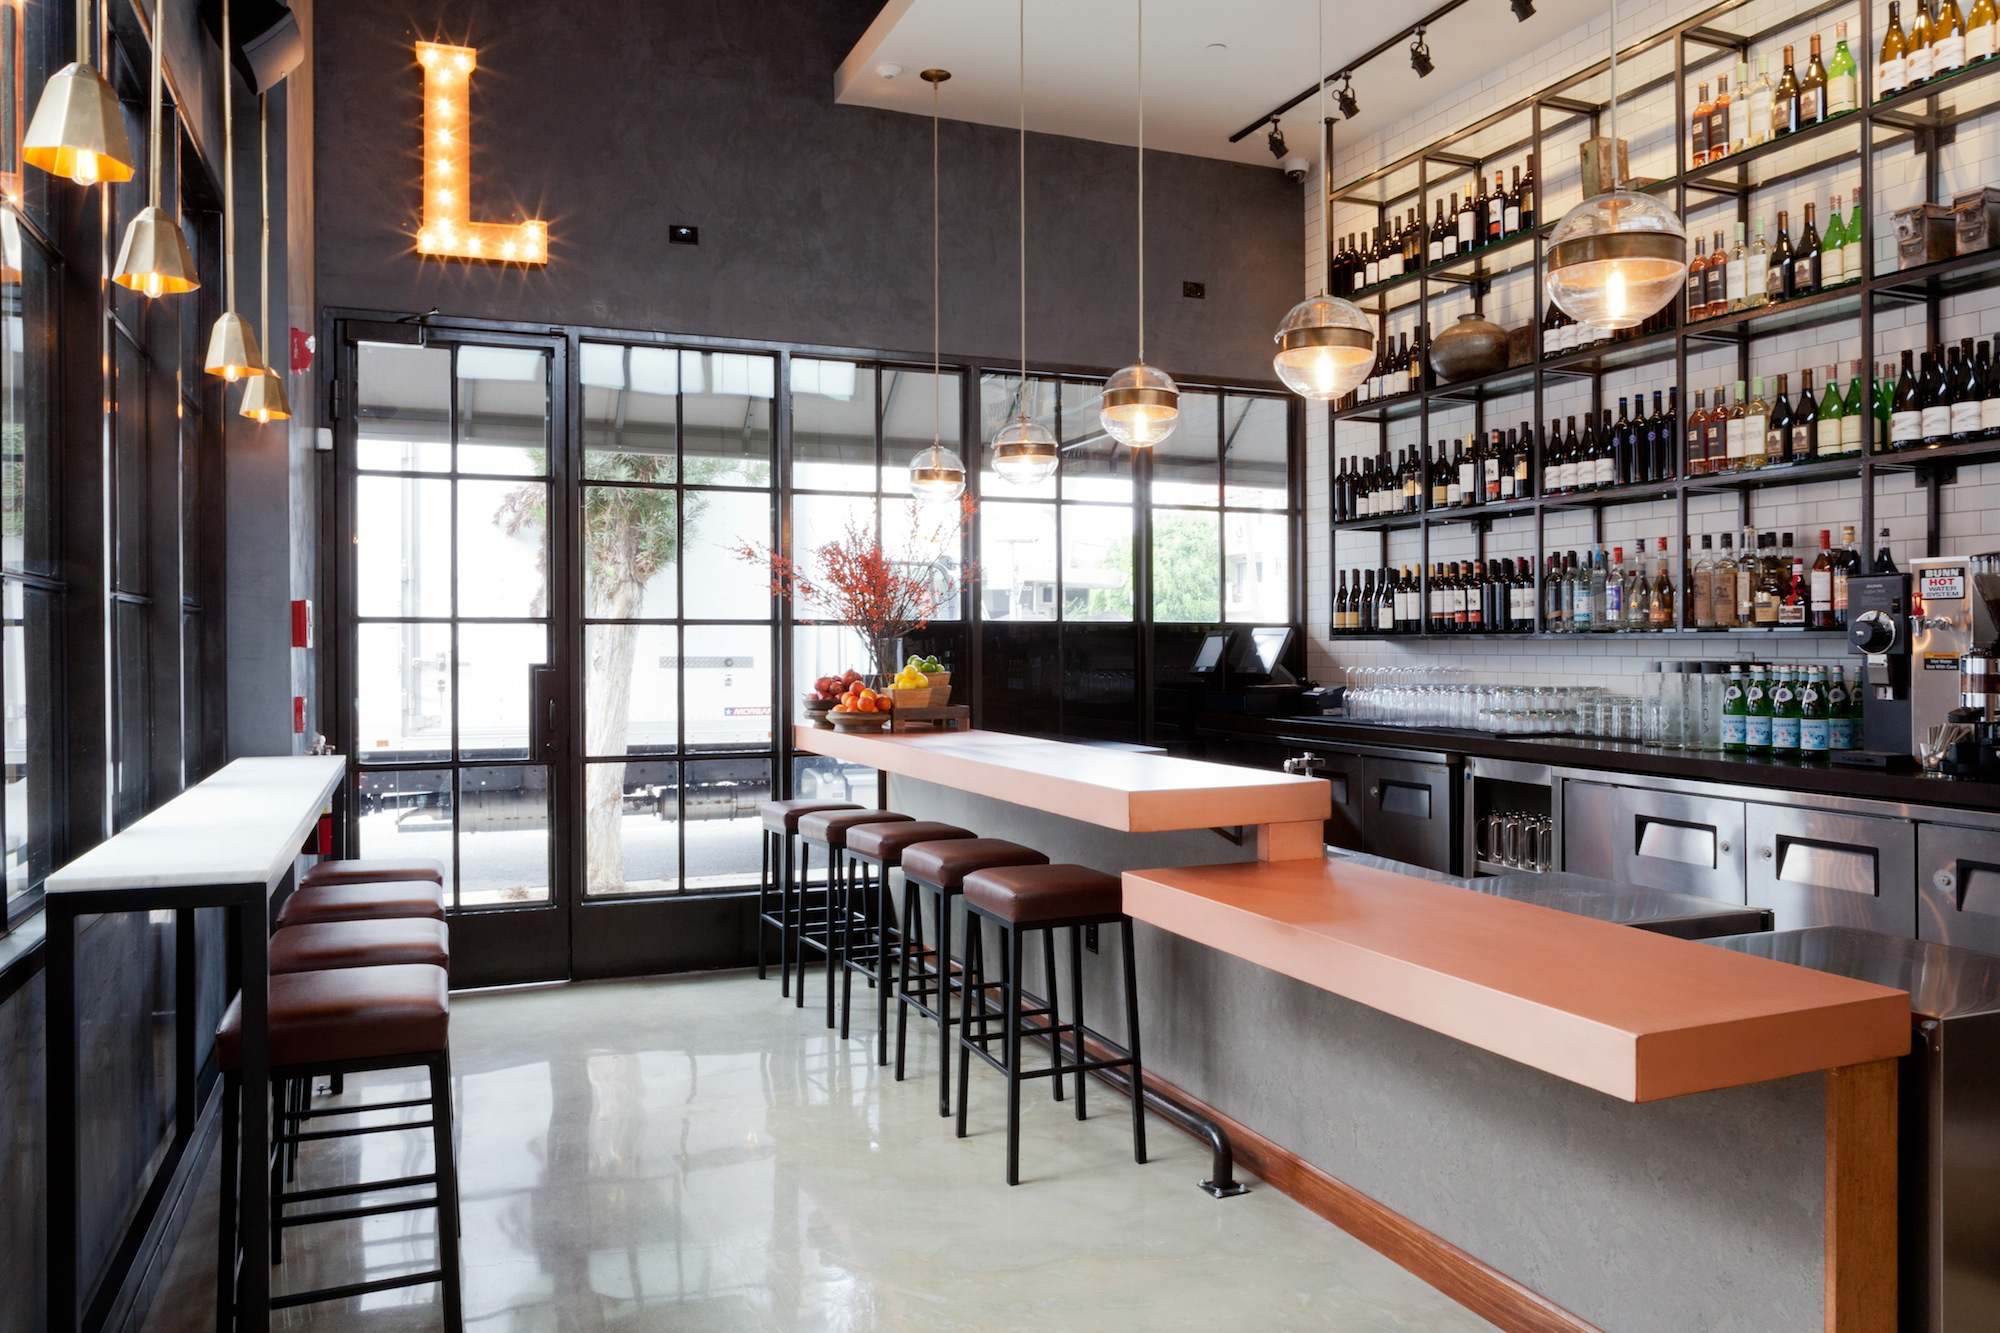 Where-To-eat-Local-Kitchen-10